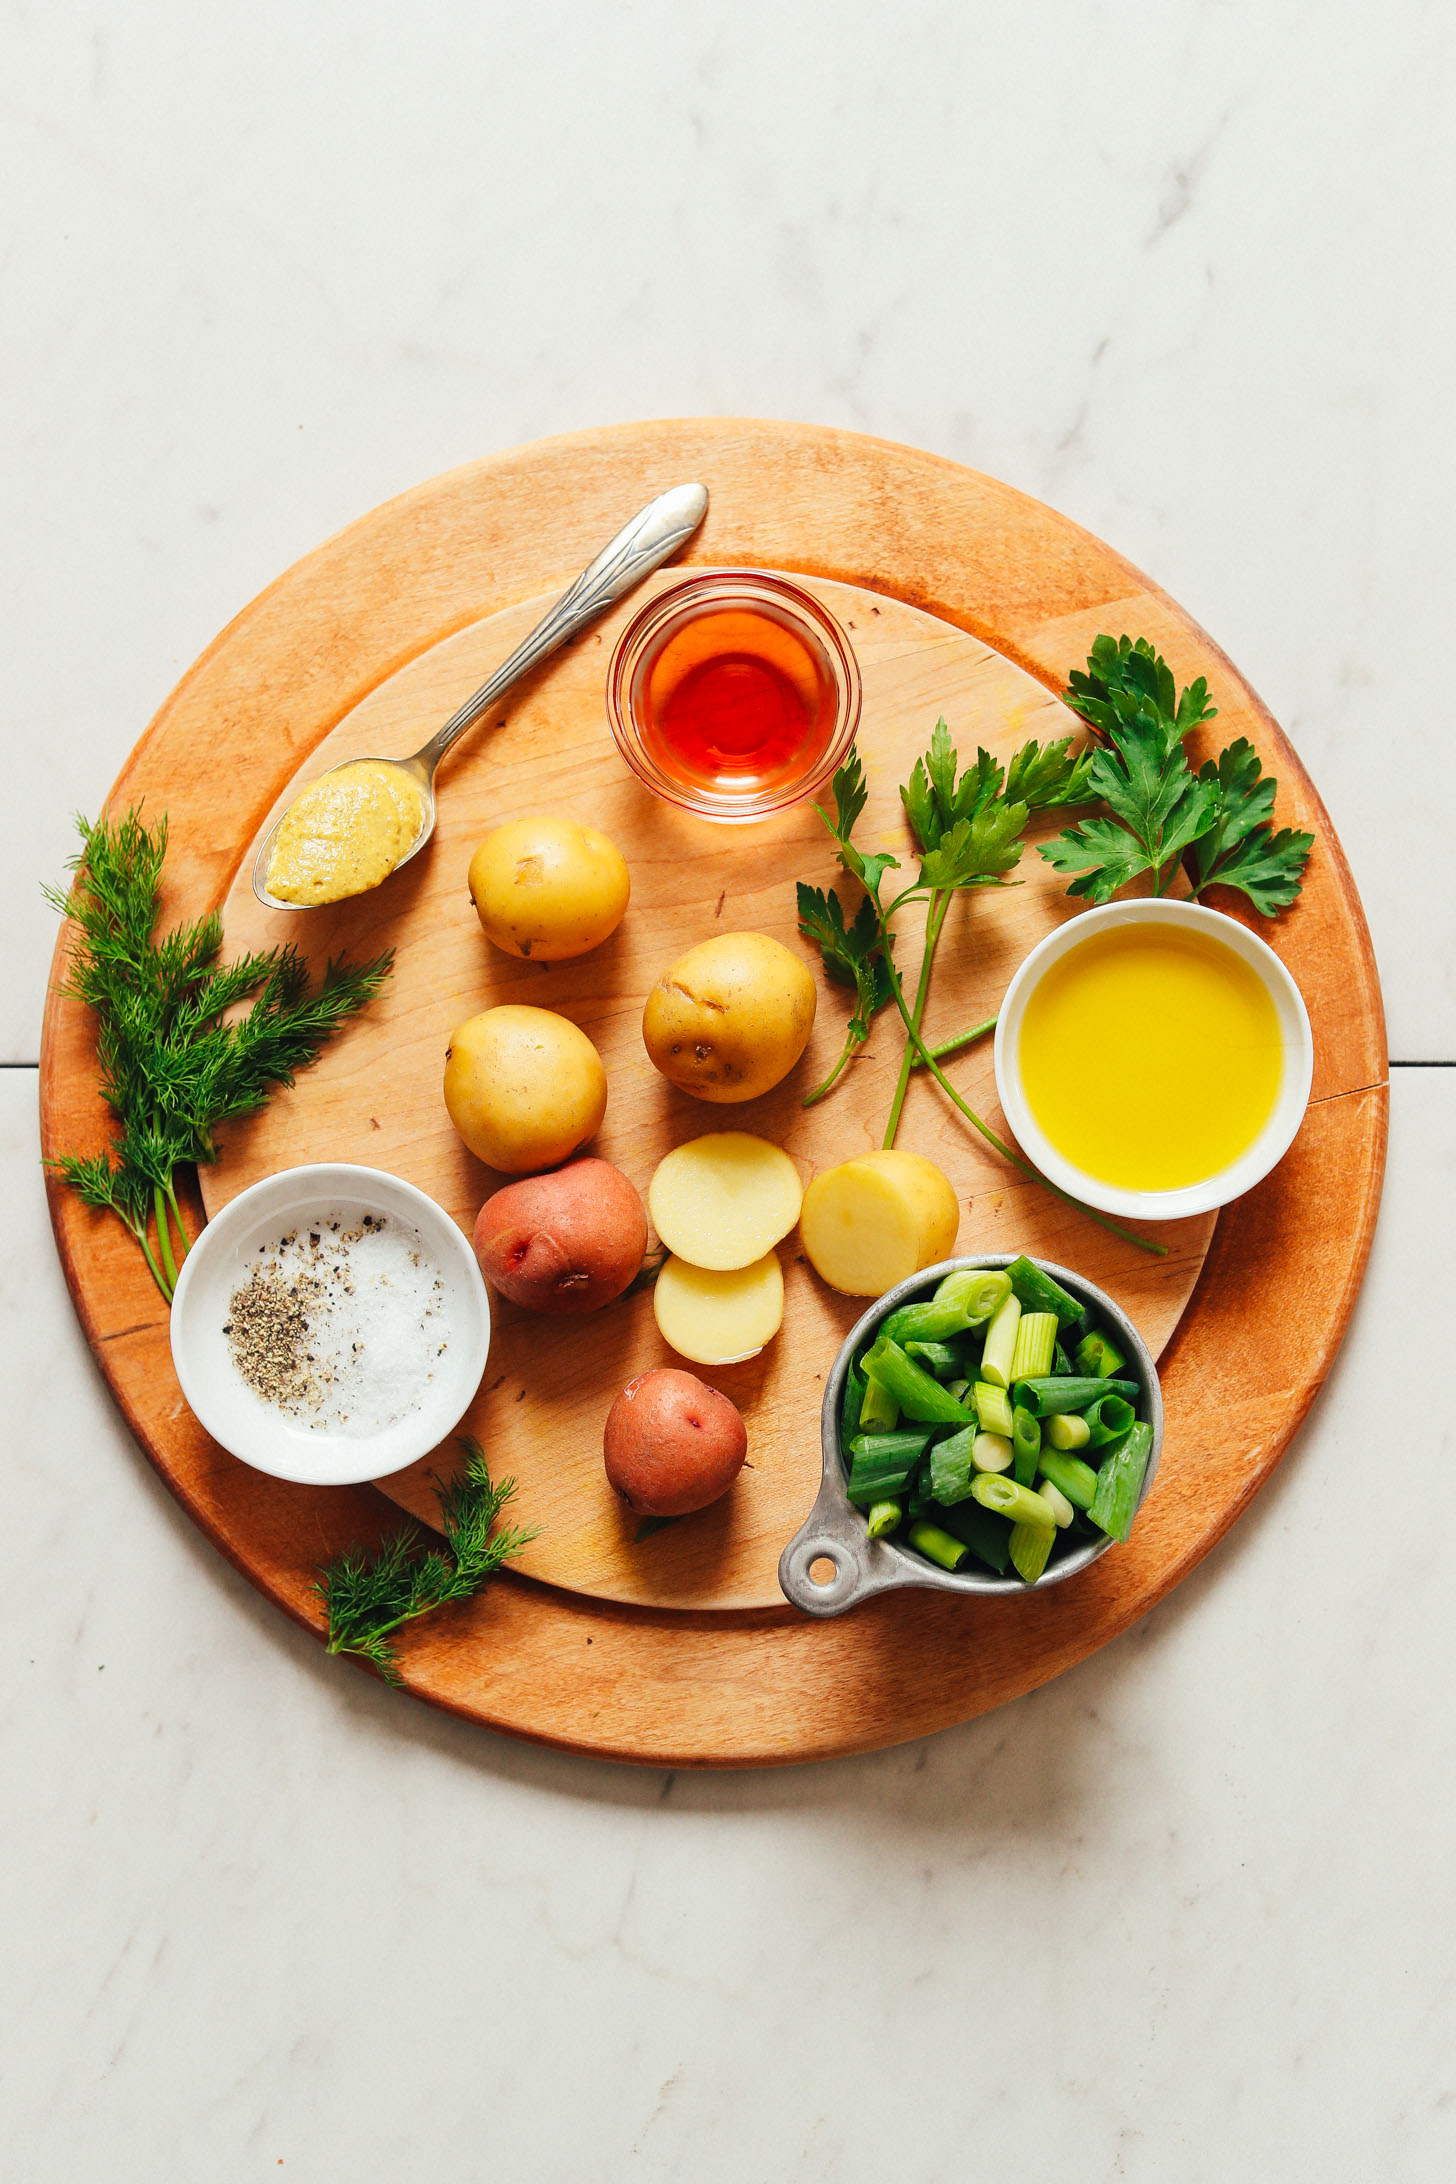 Cutting board filled with ingredients for making homemade French-Style Potato Salad